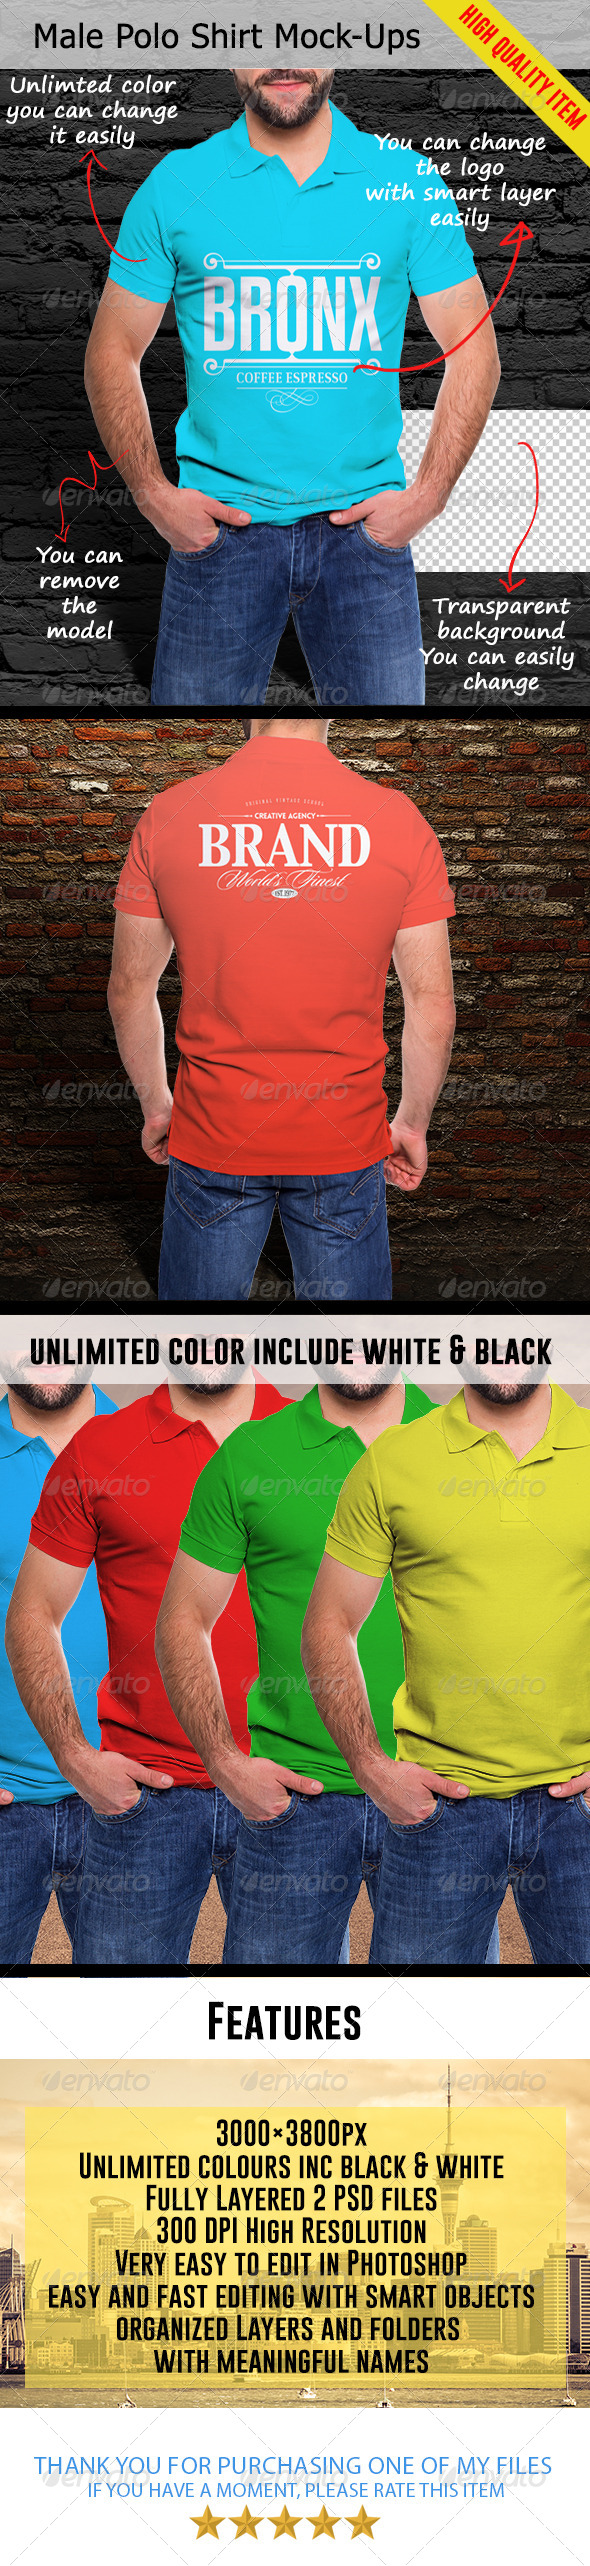 GraphicRiver Male Polo Shirt Mock-Ups 7750662